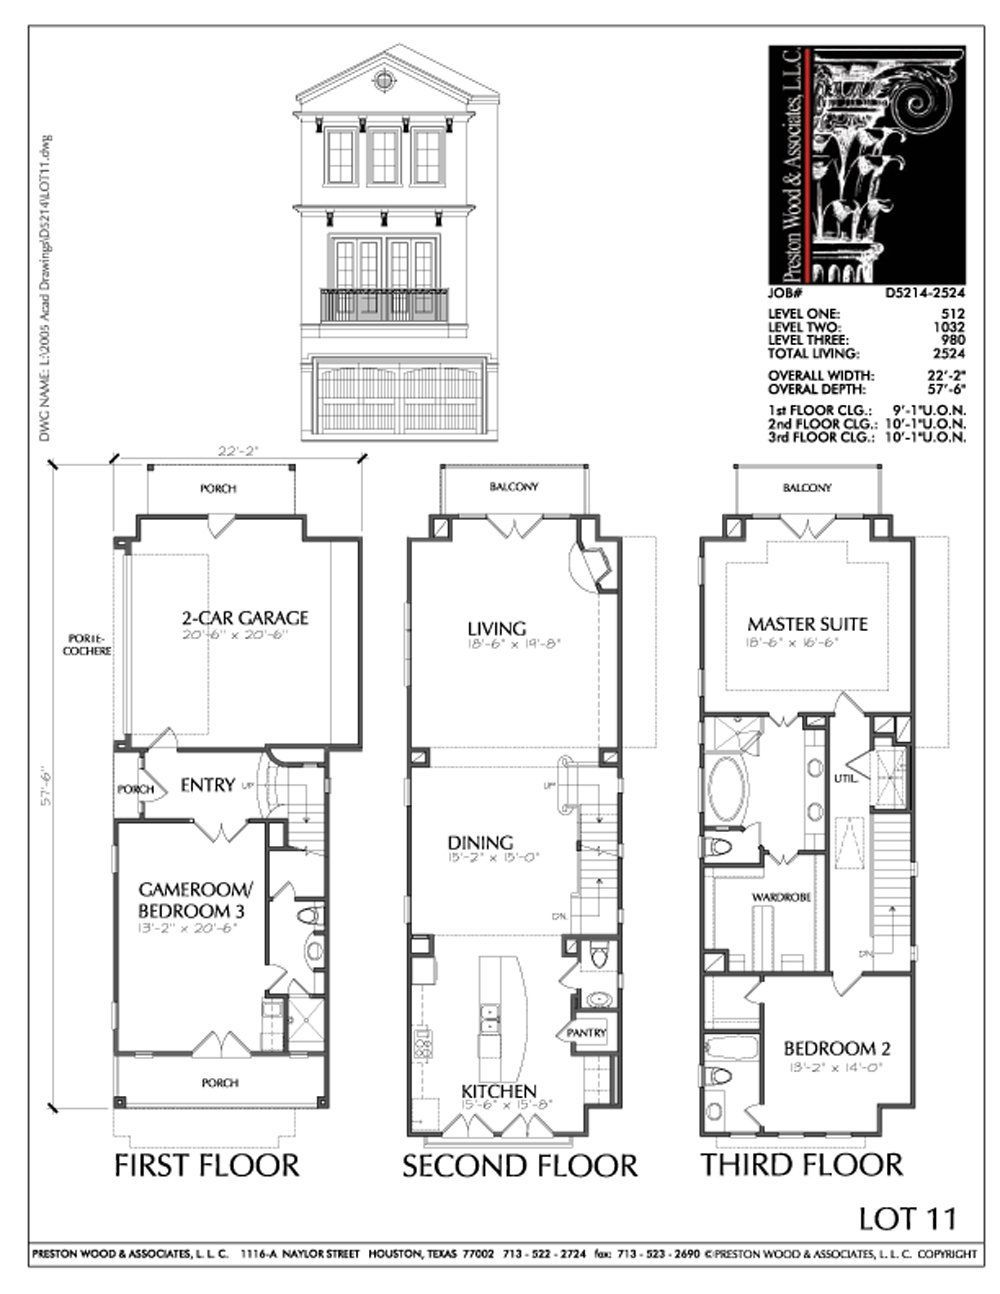 47 Popular Urban Townhouse Floor Plans In 2020 Town House Floor Plan Town House Plans Narrow Lot House Plans